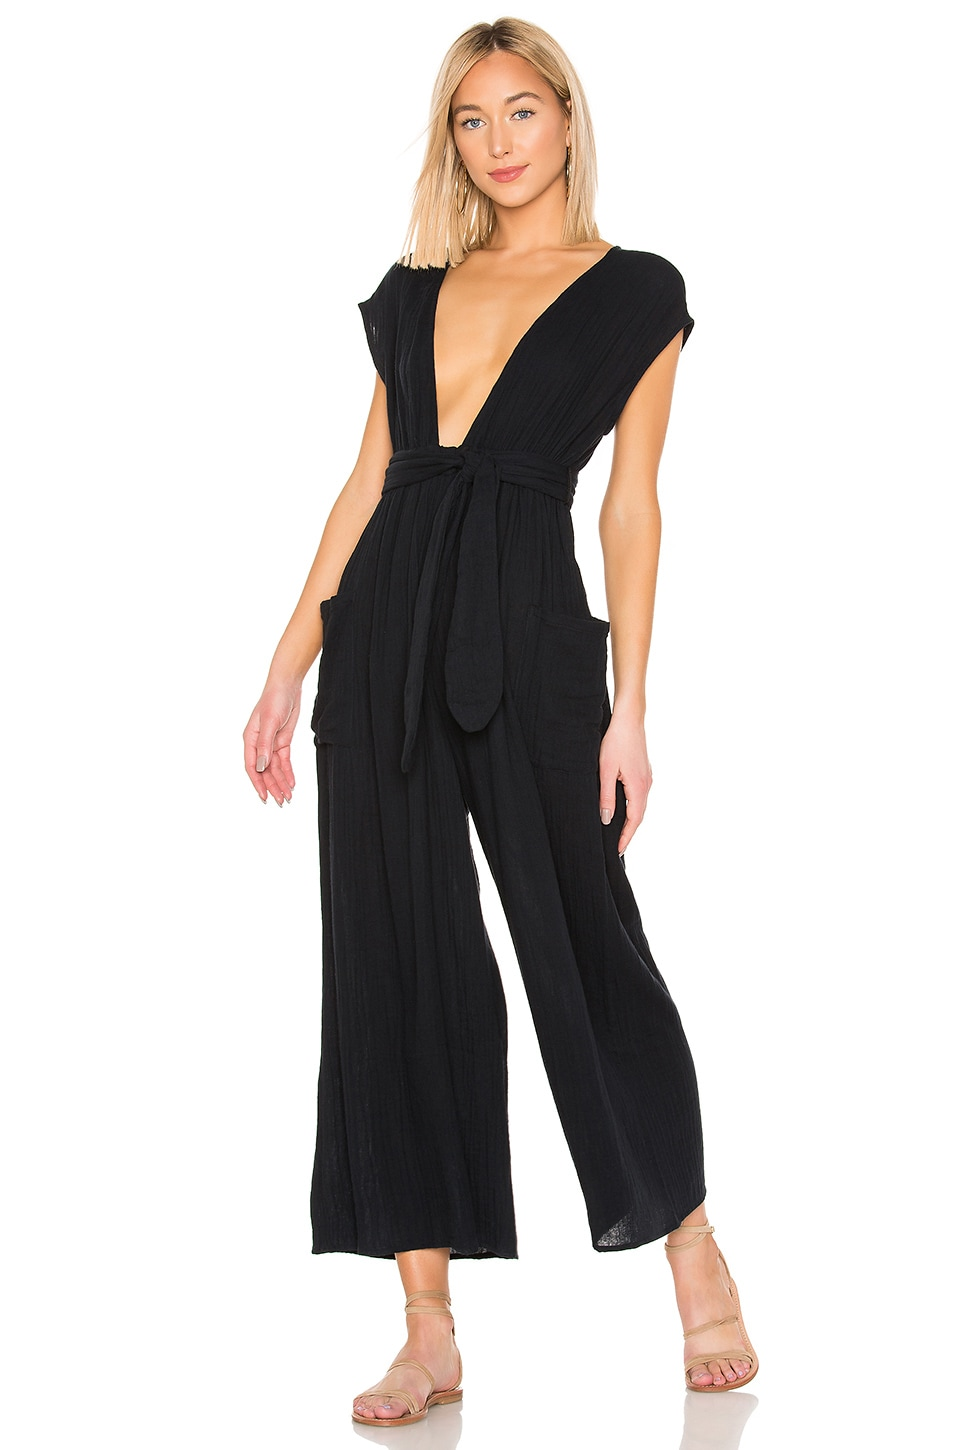 Mara Hoffman Whitney Jumpsuit in Black